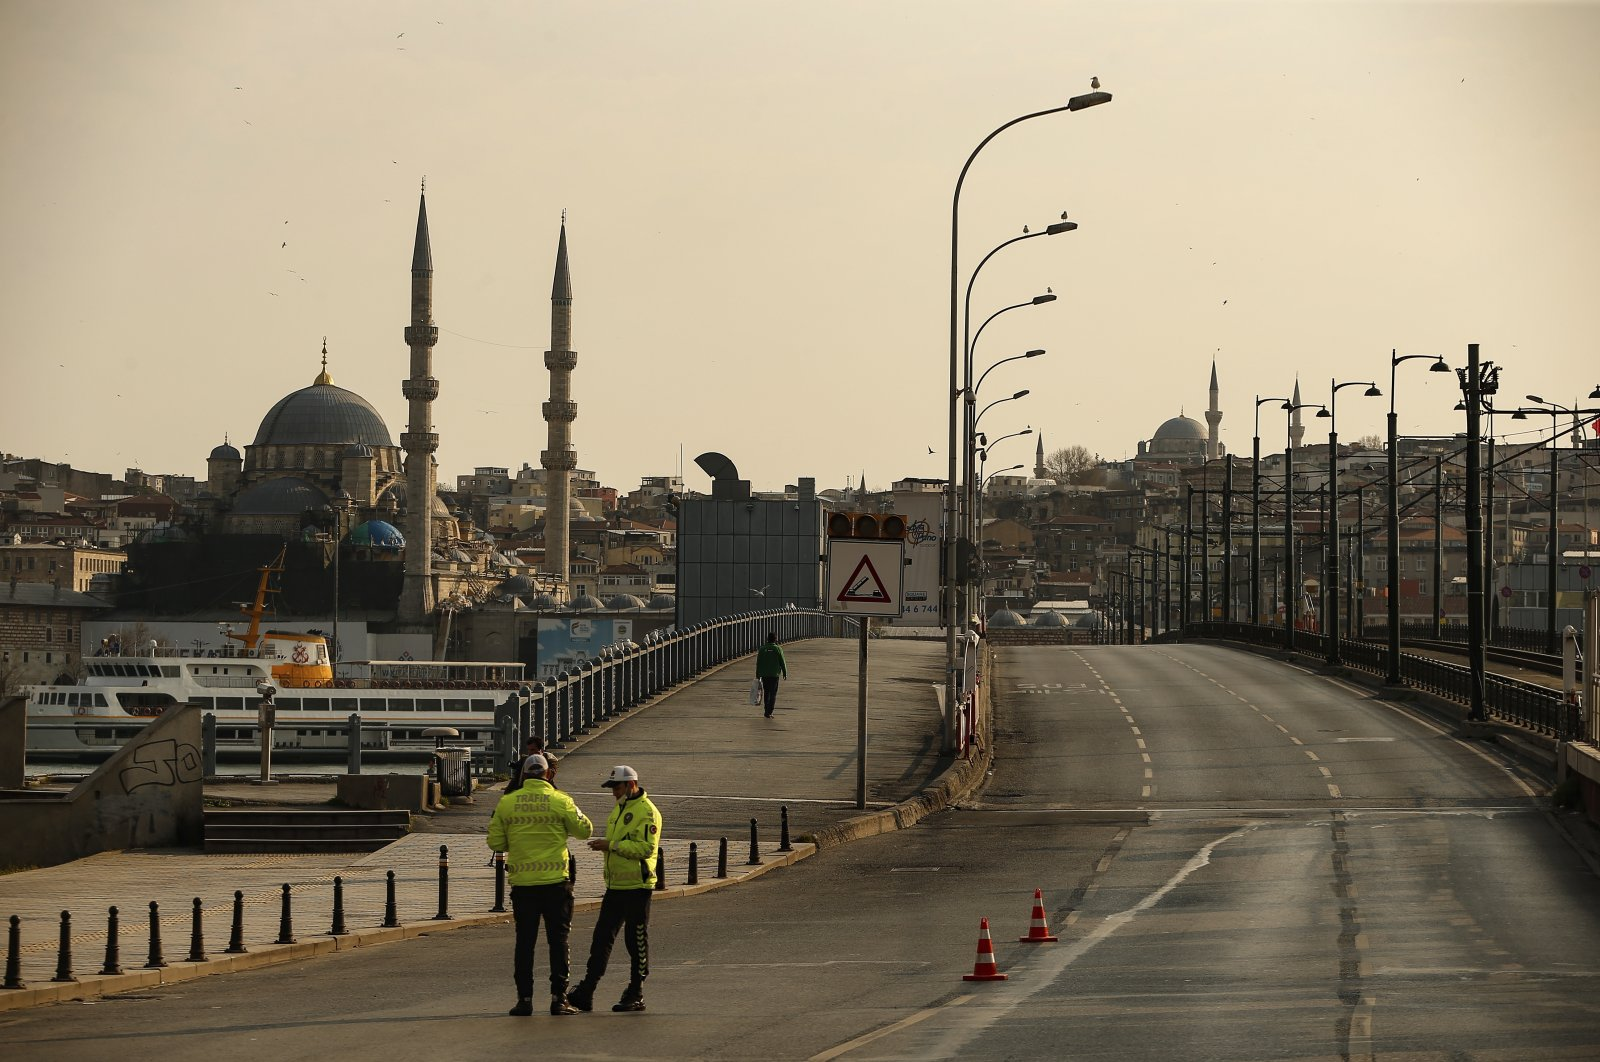 Police officers stand in the normally crowded but now mostly deserted Galata Bridge over Golden Horn with New Mosque in the background hours after the two-day curfew declared by the government to slow coronavirus spread, in Istanbul, Saturday, April 11, 2020. (AP Photo)